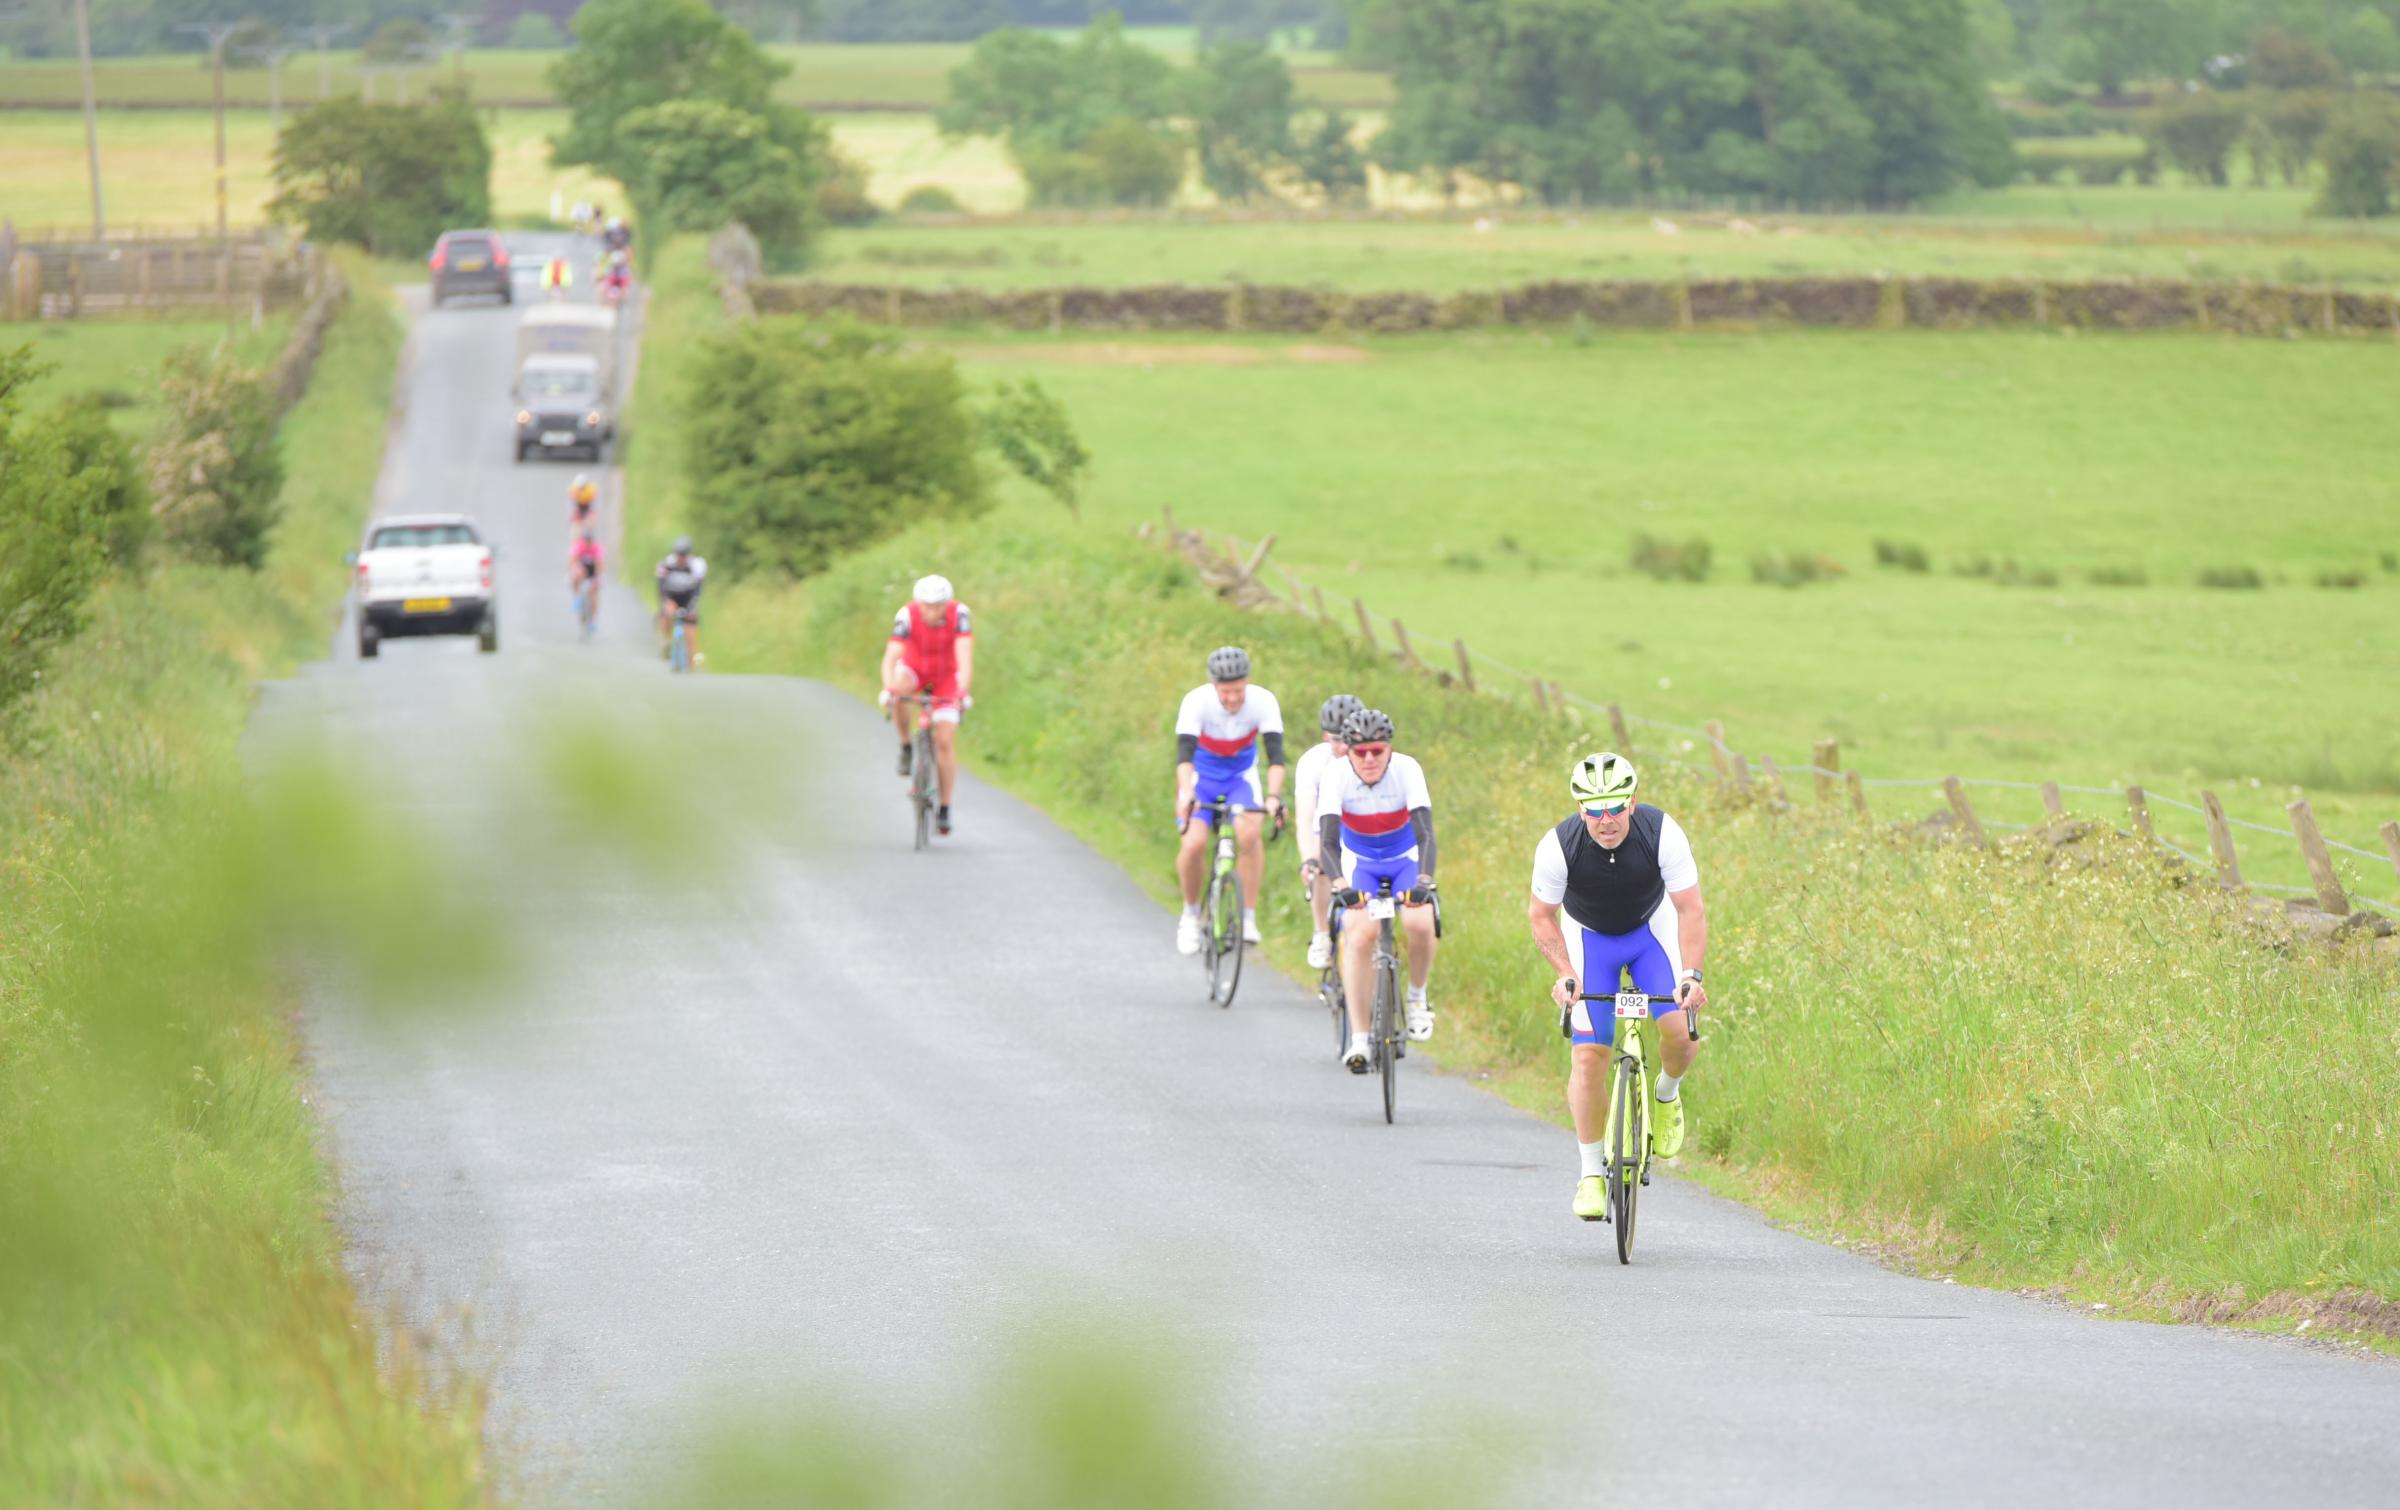 Pedal power: riders can still register for the Wharfedale Ton charity cycle on June 14. Photograph by Richard Walker/ www.imagenorth.net